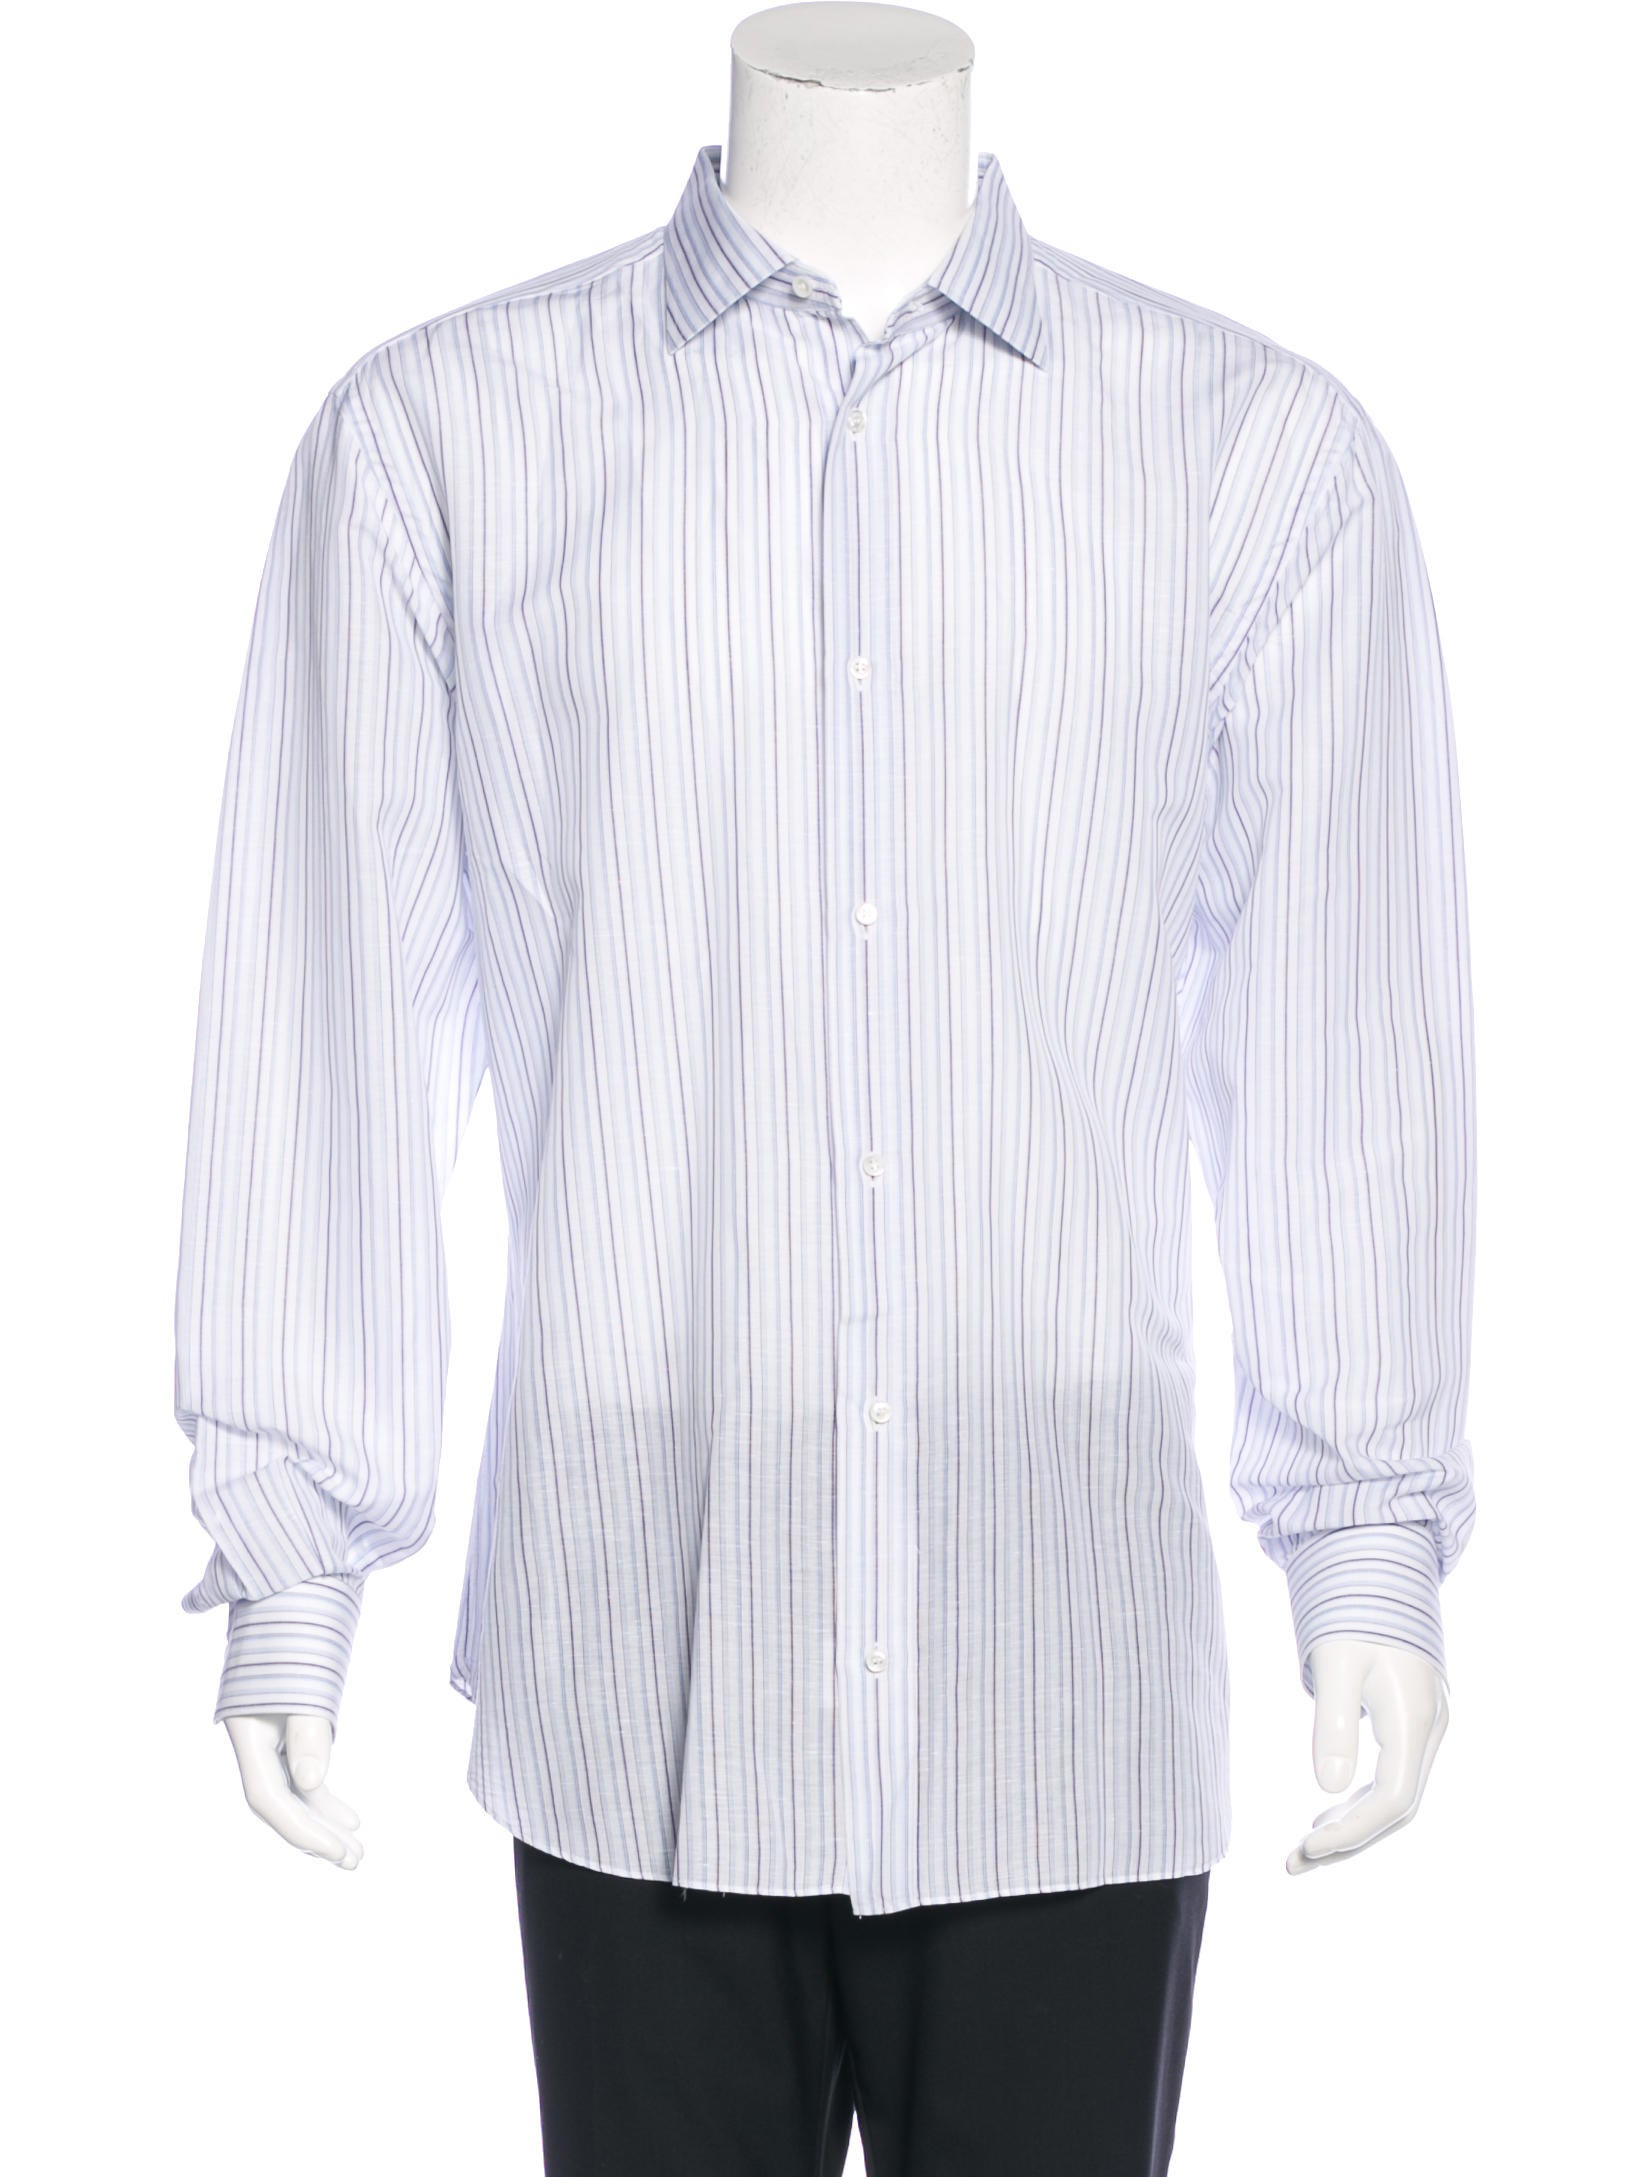 Free shipping and returns on Men's Linen Shirts at evildownloadersuper74k.ga Skip navigation. Give the card that gives! We donate 1% of all Gift Card sales to local nonprofits. Shop Gift Cards. Bugatchi Shaped Fit Rose Print Linen Blend Sport Shirt. $ Rodd & Gunn Alford Forest Floral Linen Sport Shirt.